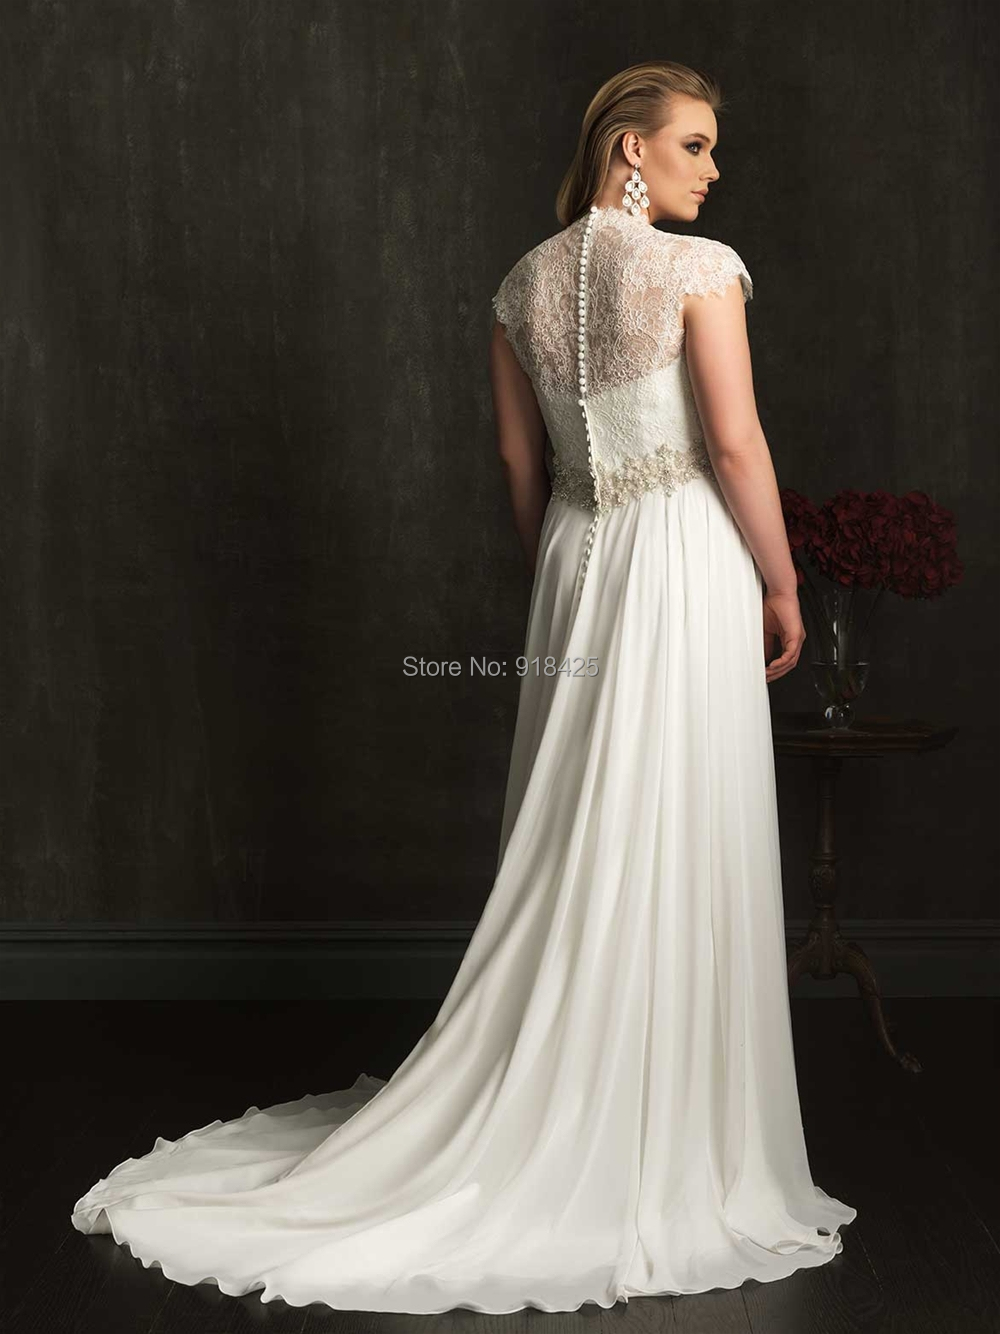 Modest Empire Waist Chiffon Plus Size Wedding Dresses Lace Cap ...